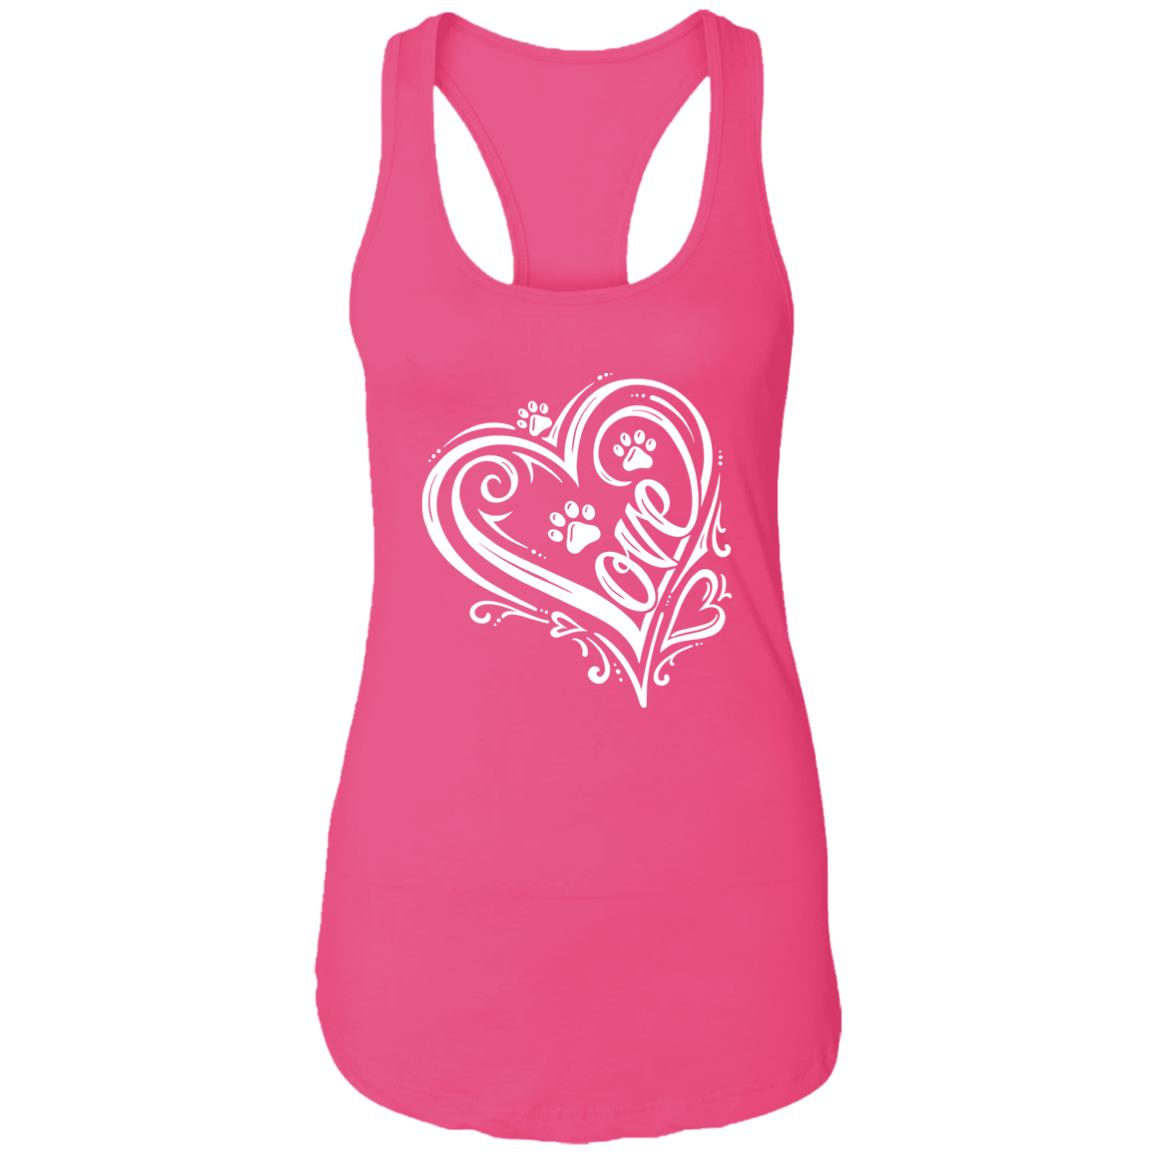 Love Love ❤️  Ideal Tank - Pink 🐾 Deal 40% Off!